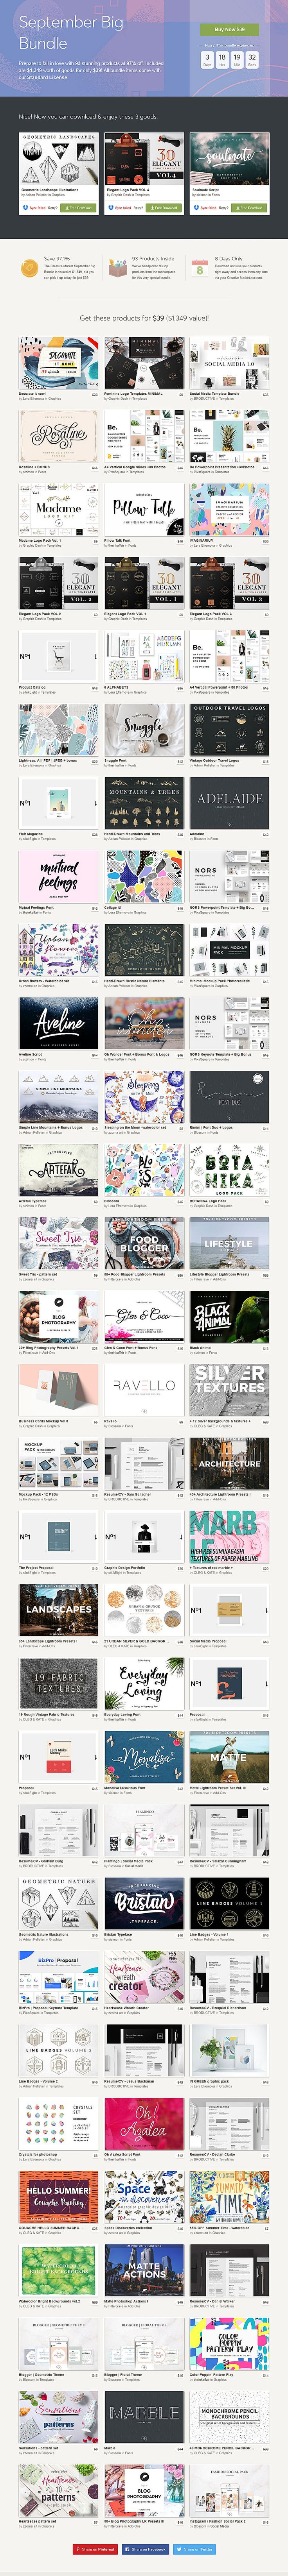 September Big Bundle :  Prepare to fall in love with 93 stunning #design products at 97% off. Included are $1,349 worth of goods for only $39! ( #fonts #wordpressthemes #creative #typography #texture #watercolor #braiding #logodesign #instagram #presentation #business #advertisement )